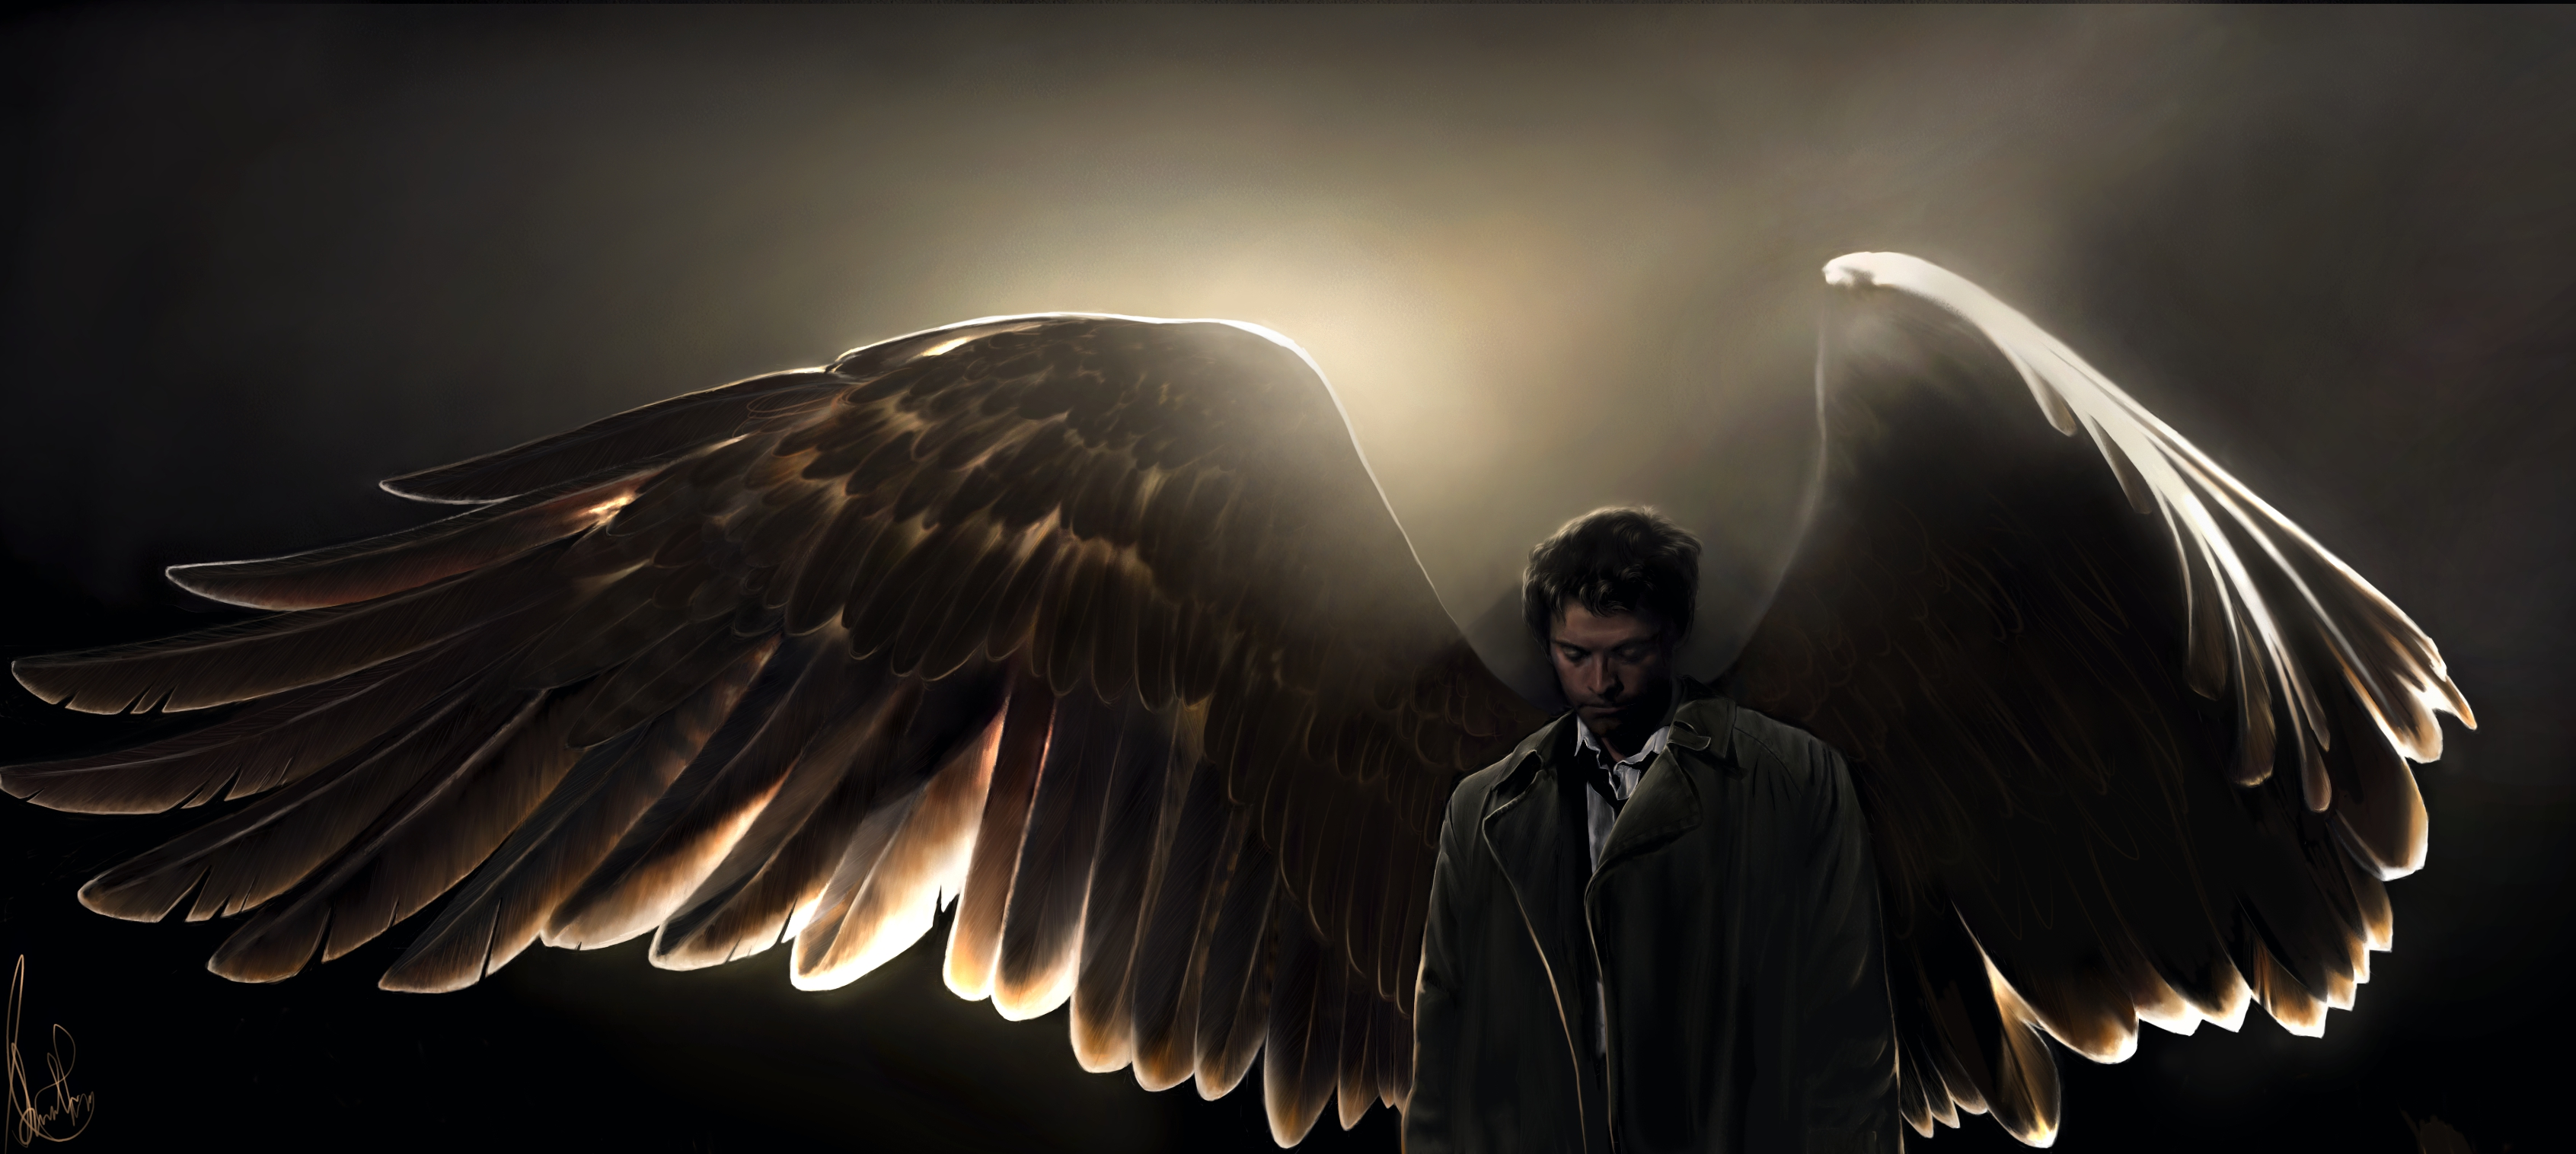 110 supernatural hd wallpapers background images wallpaper abyss hd wallpaper background image id552922 voltagebd Image collections